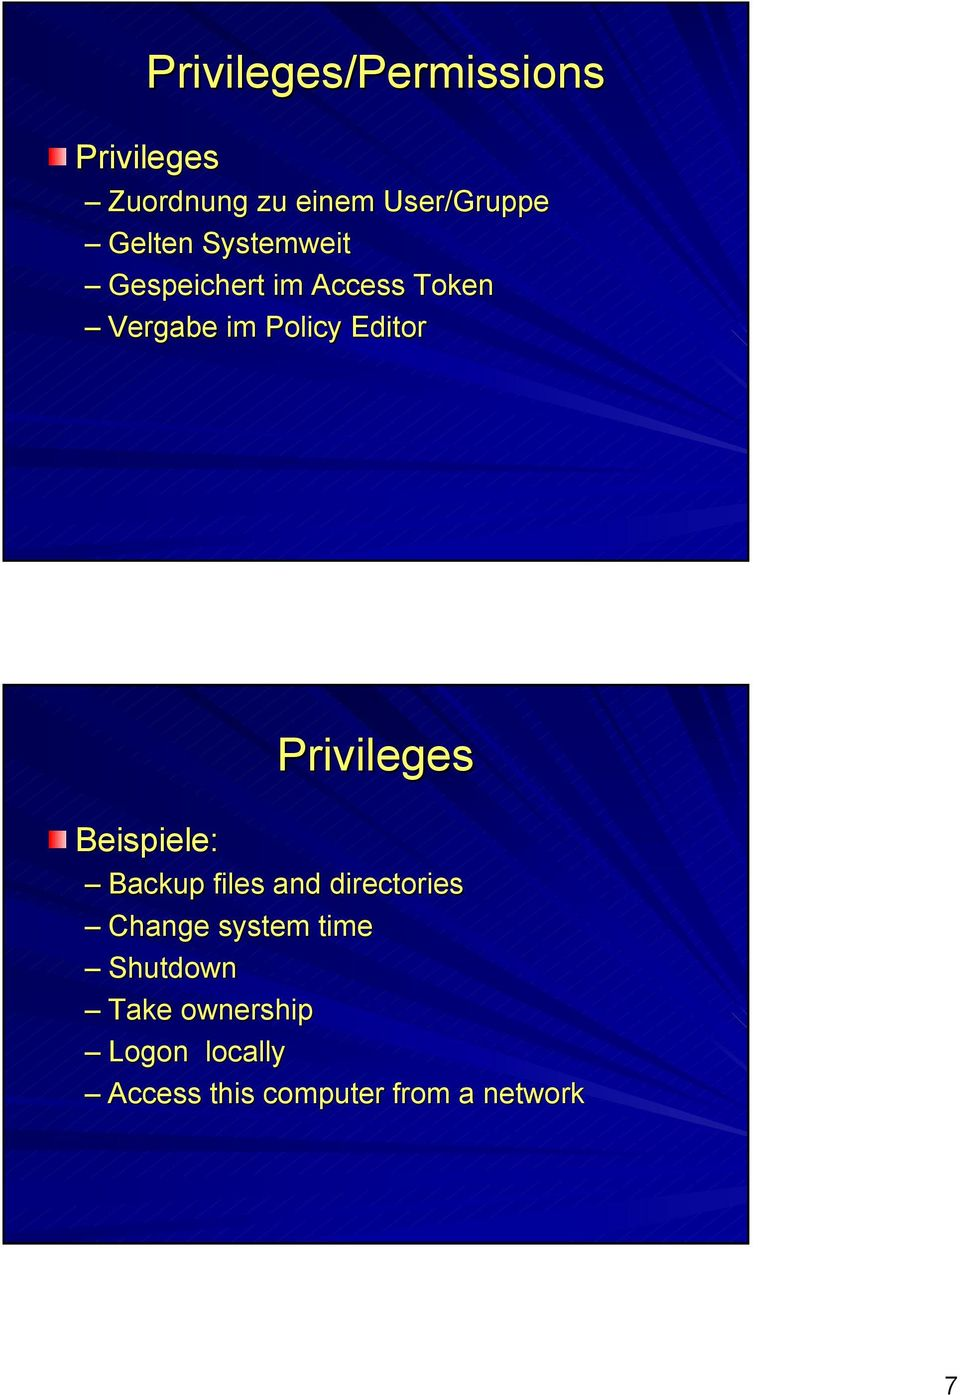 Beispiele: Privileges Backup files and directories Change system time